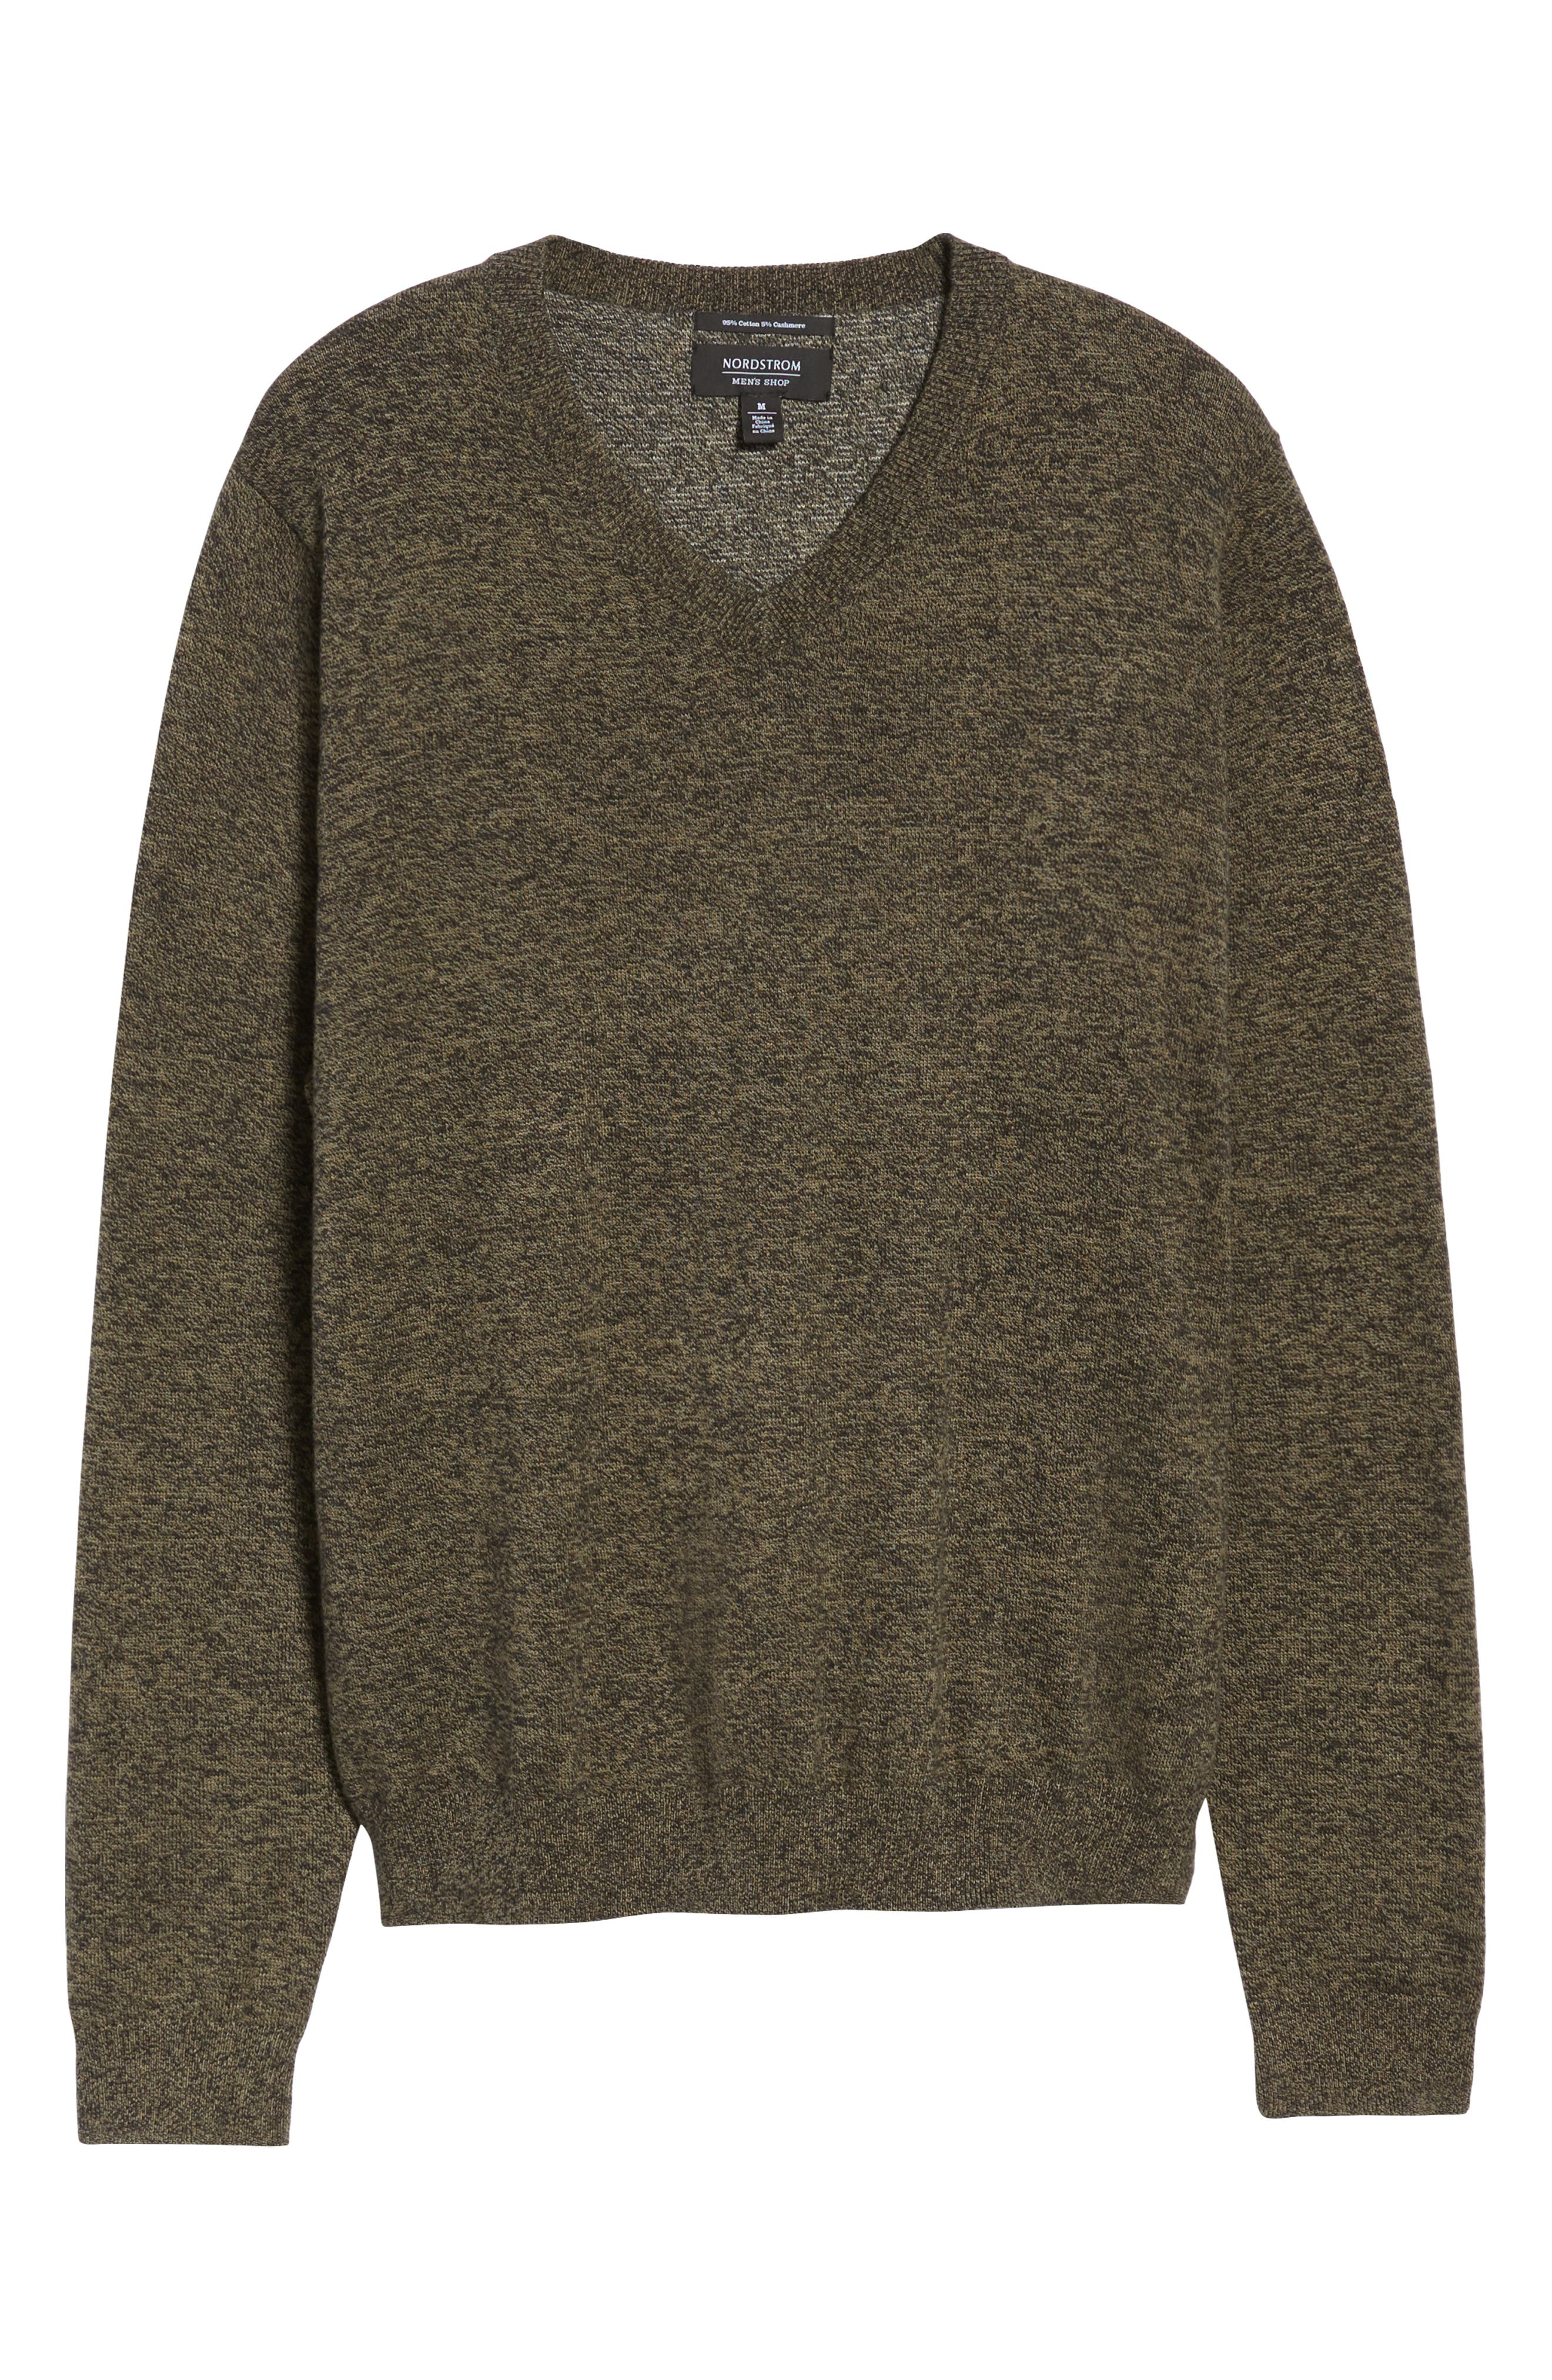 Cotton & Cashmere V-Neck Sweater,                             Alternate thumbnail 6, color,                             GREEN FOREST MARL